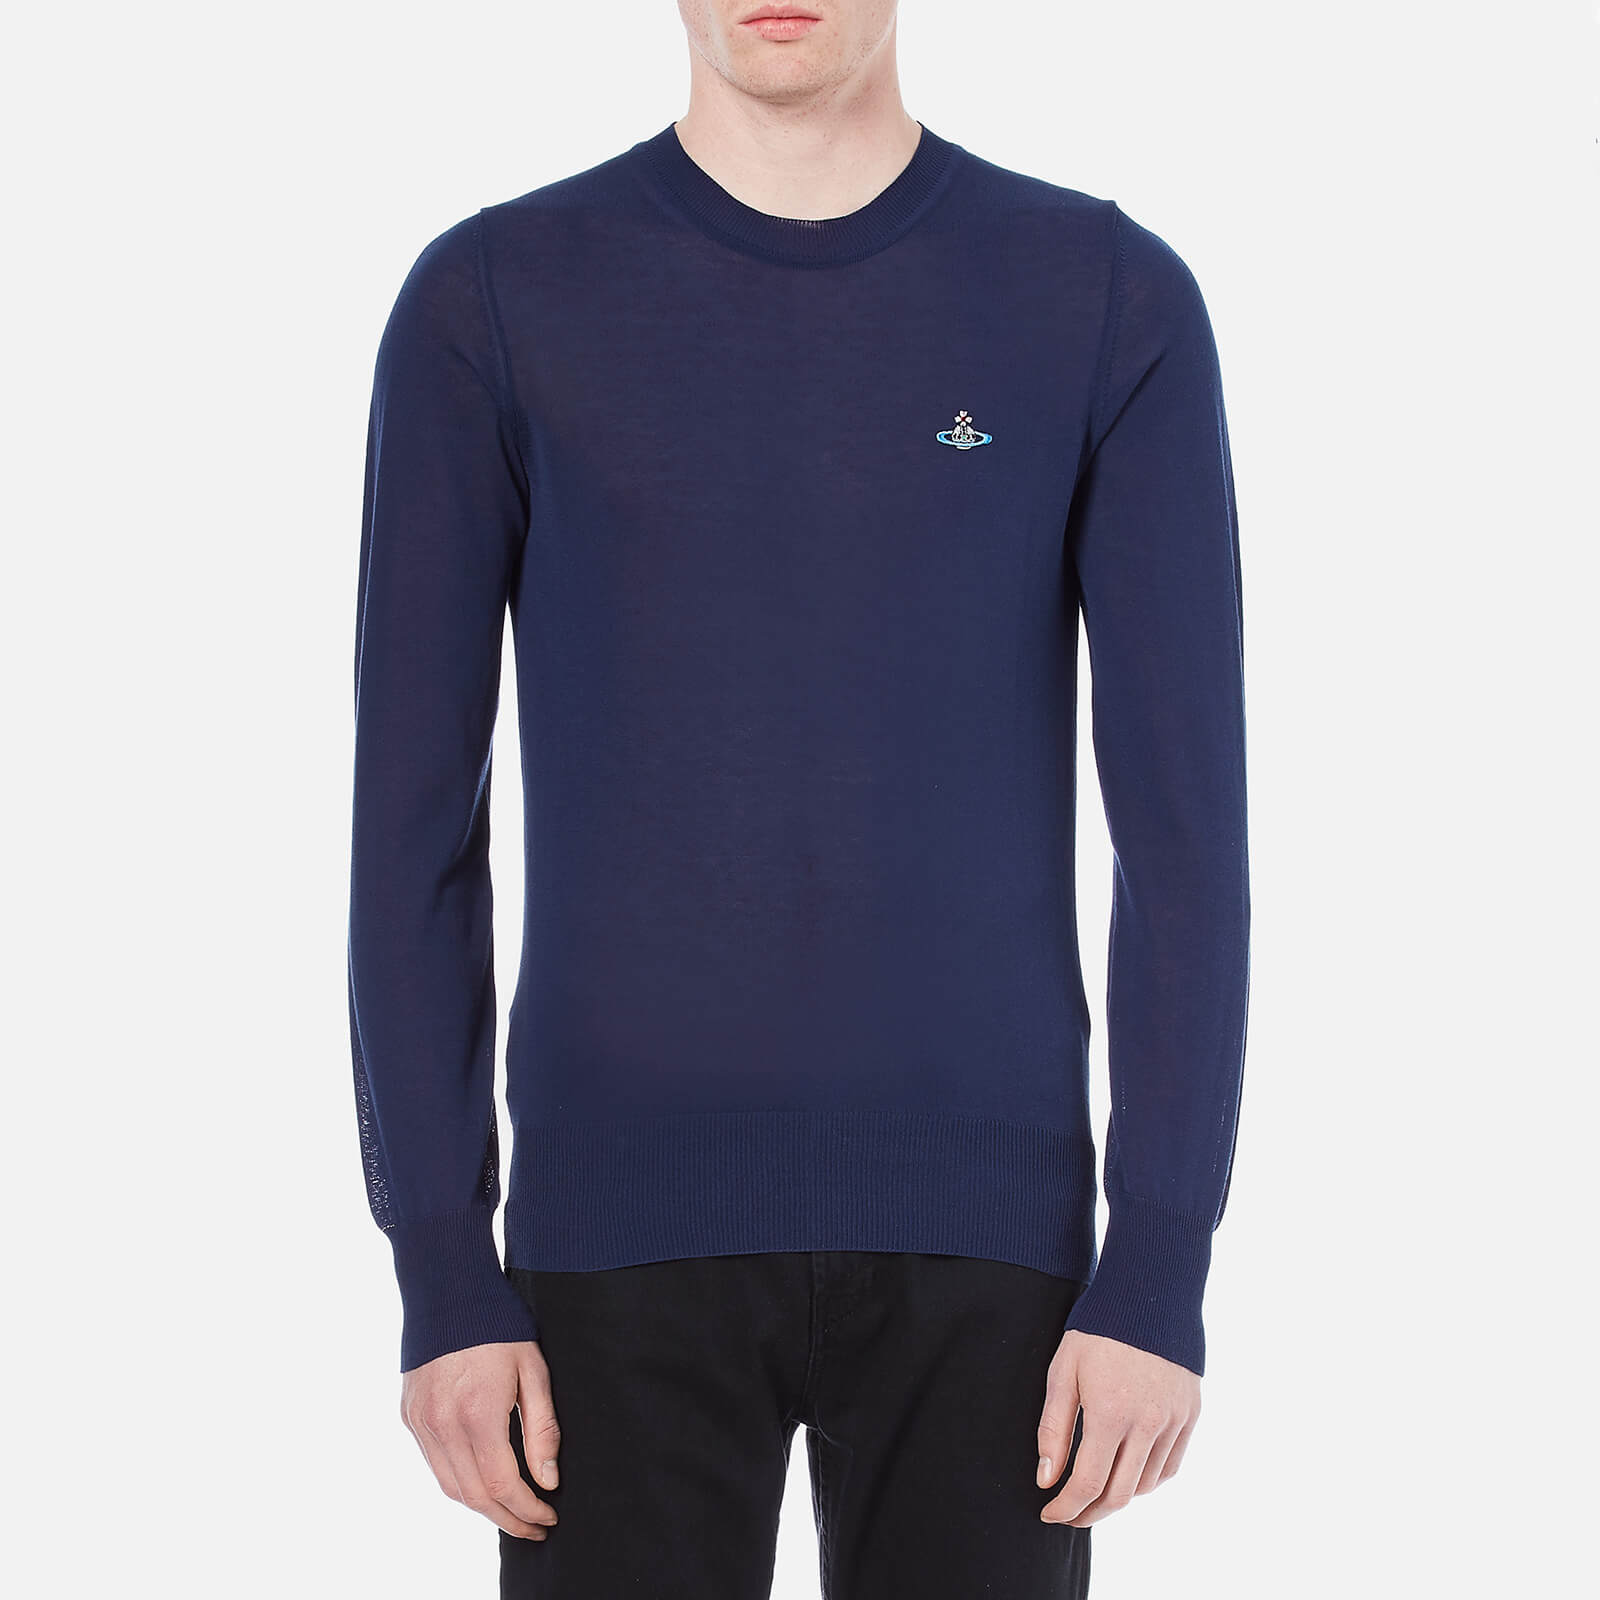 b60e20e4d1 Vivienne Westwood Men's Classic Round Neck Knitted Jumper - Navy - Free UK  Delivery over £50